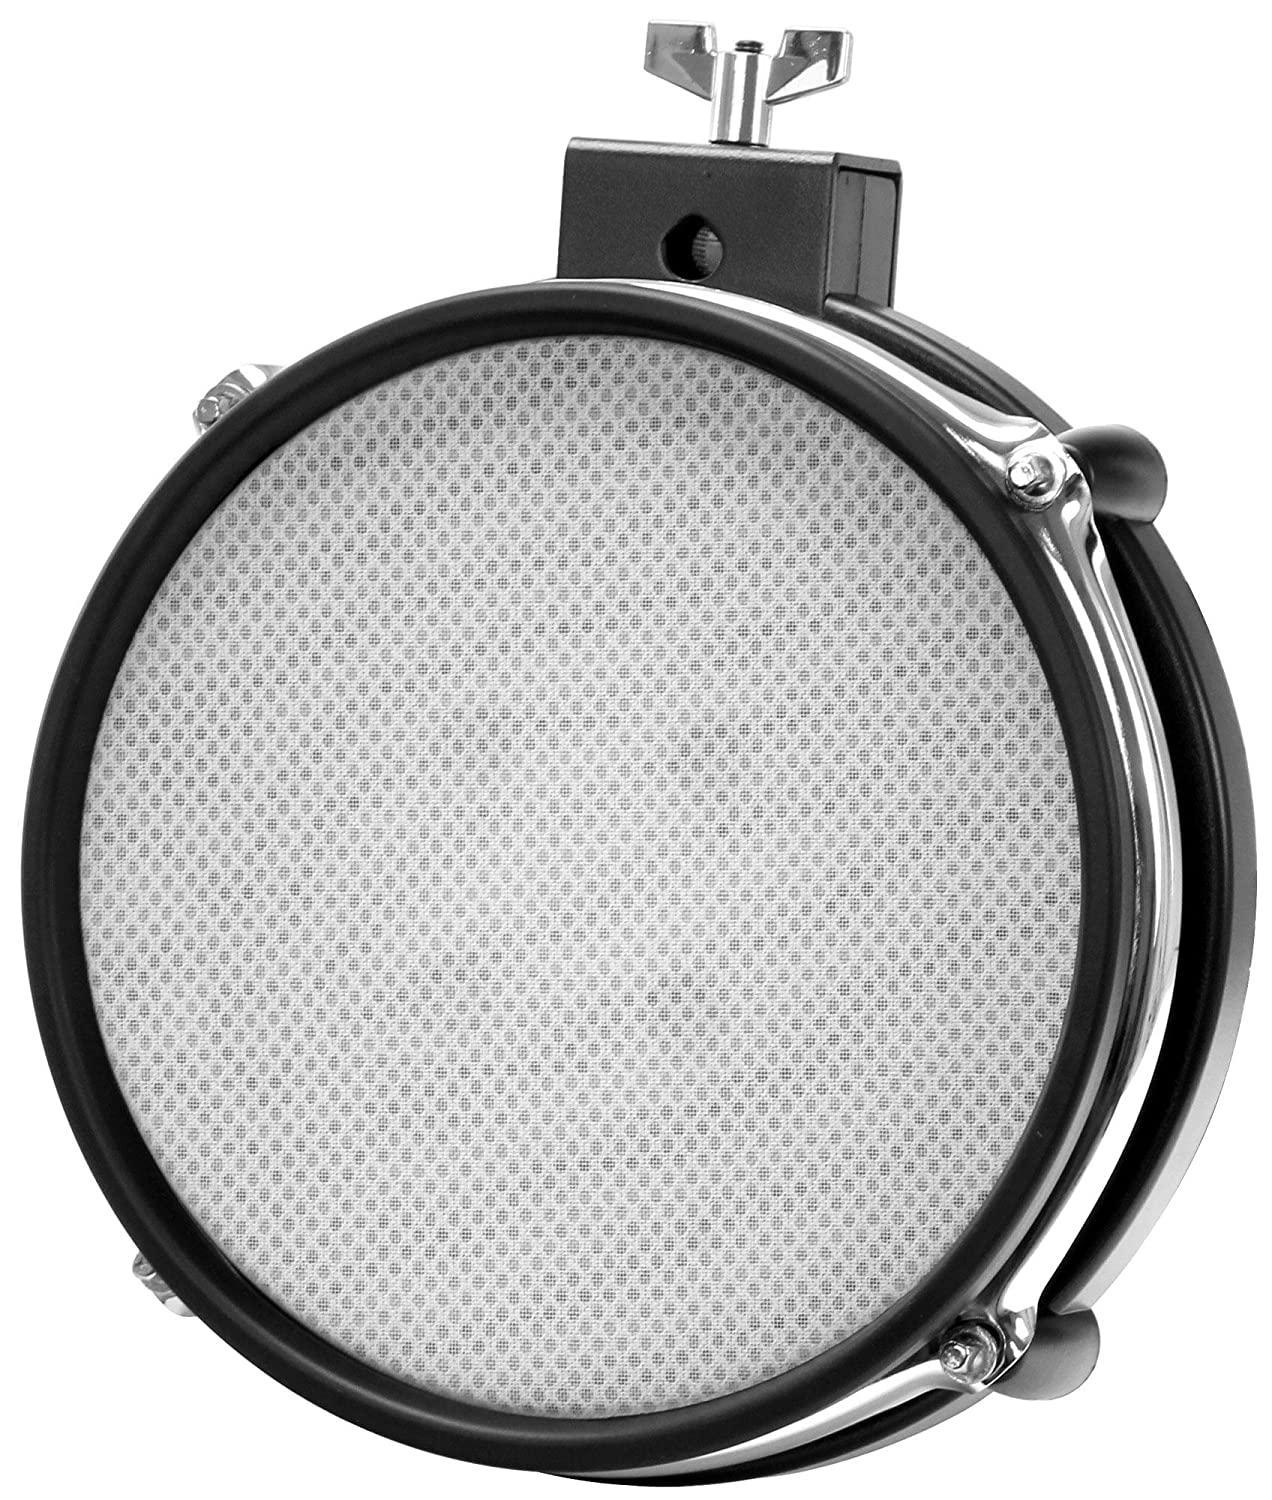 XDrum MP-08 8 mesh pad, y compris le support XDrum MP-08 8 mesh pad DD-530 8 PAD